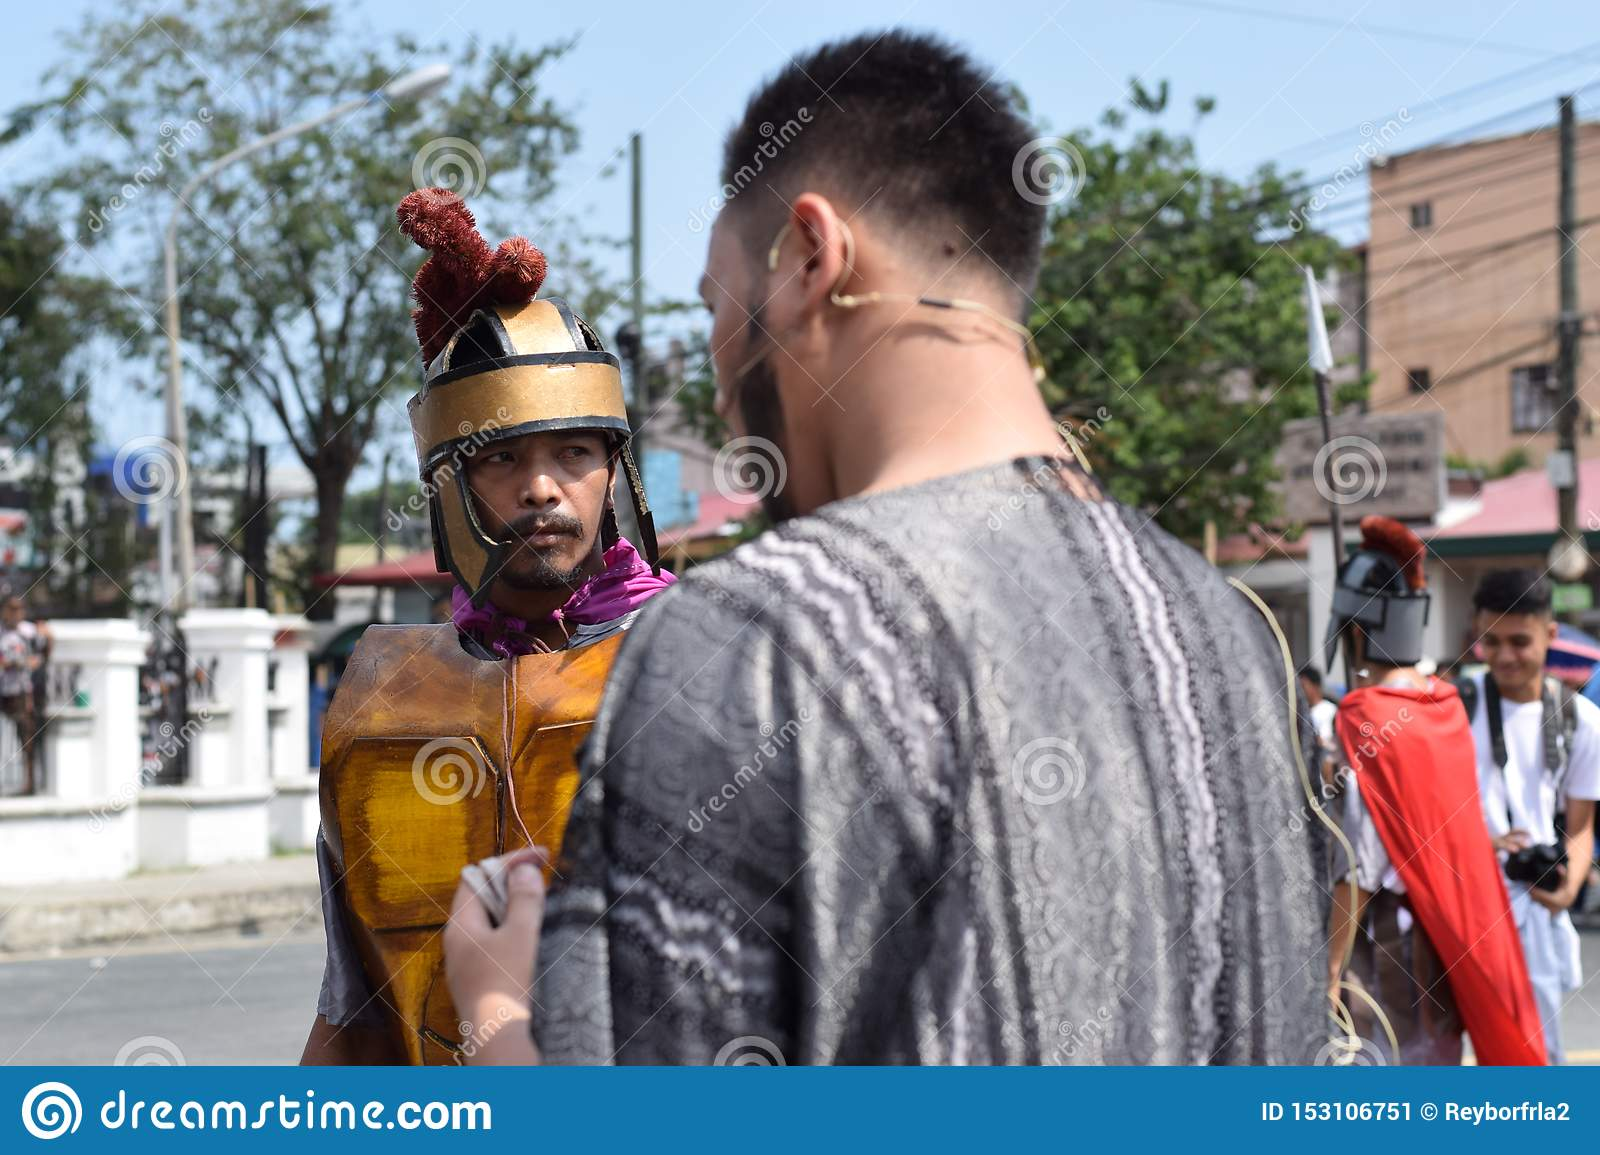 Judas iscariot confronted by rude roman soldier, street drama, community celebrates Good Friday representing the events that led t